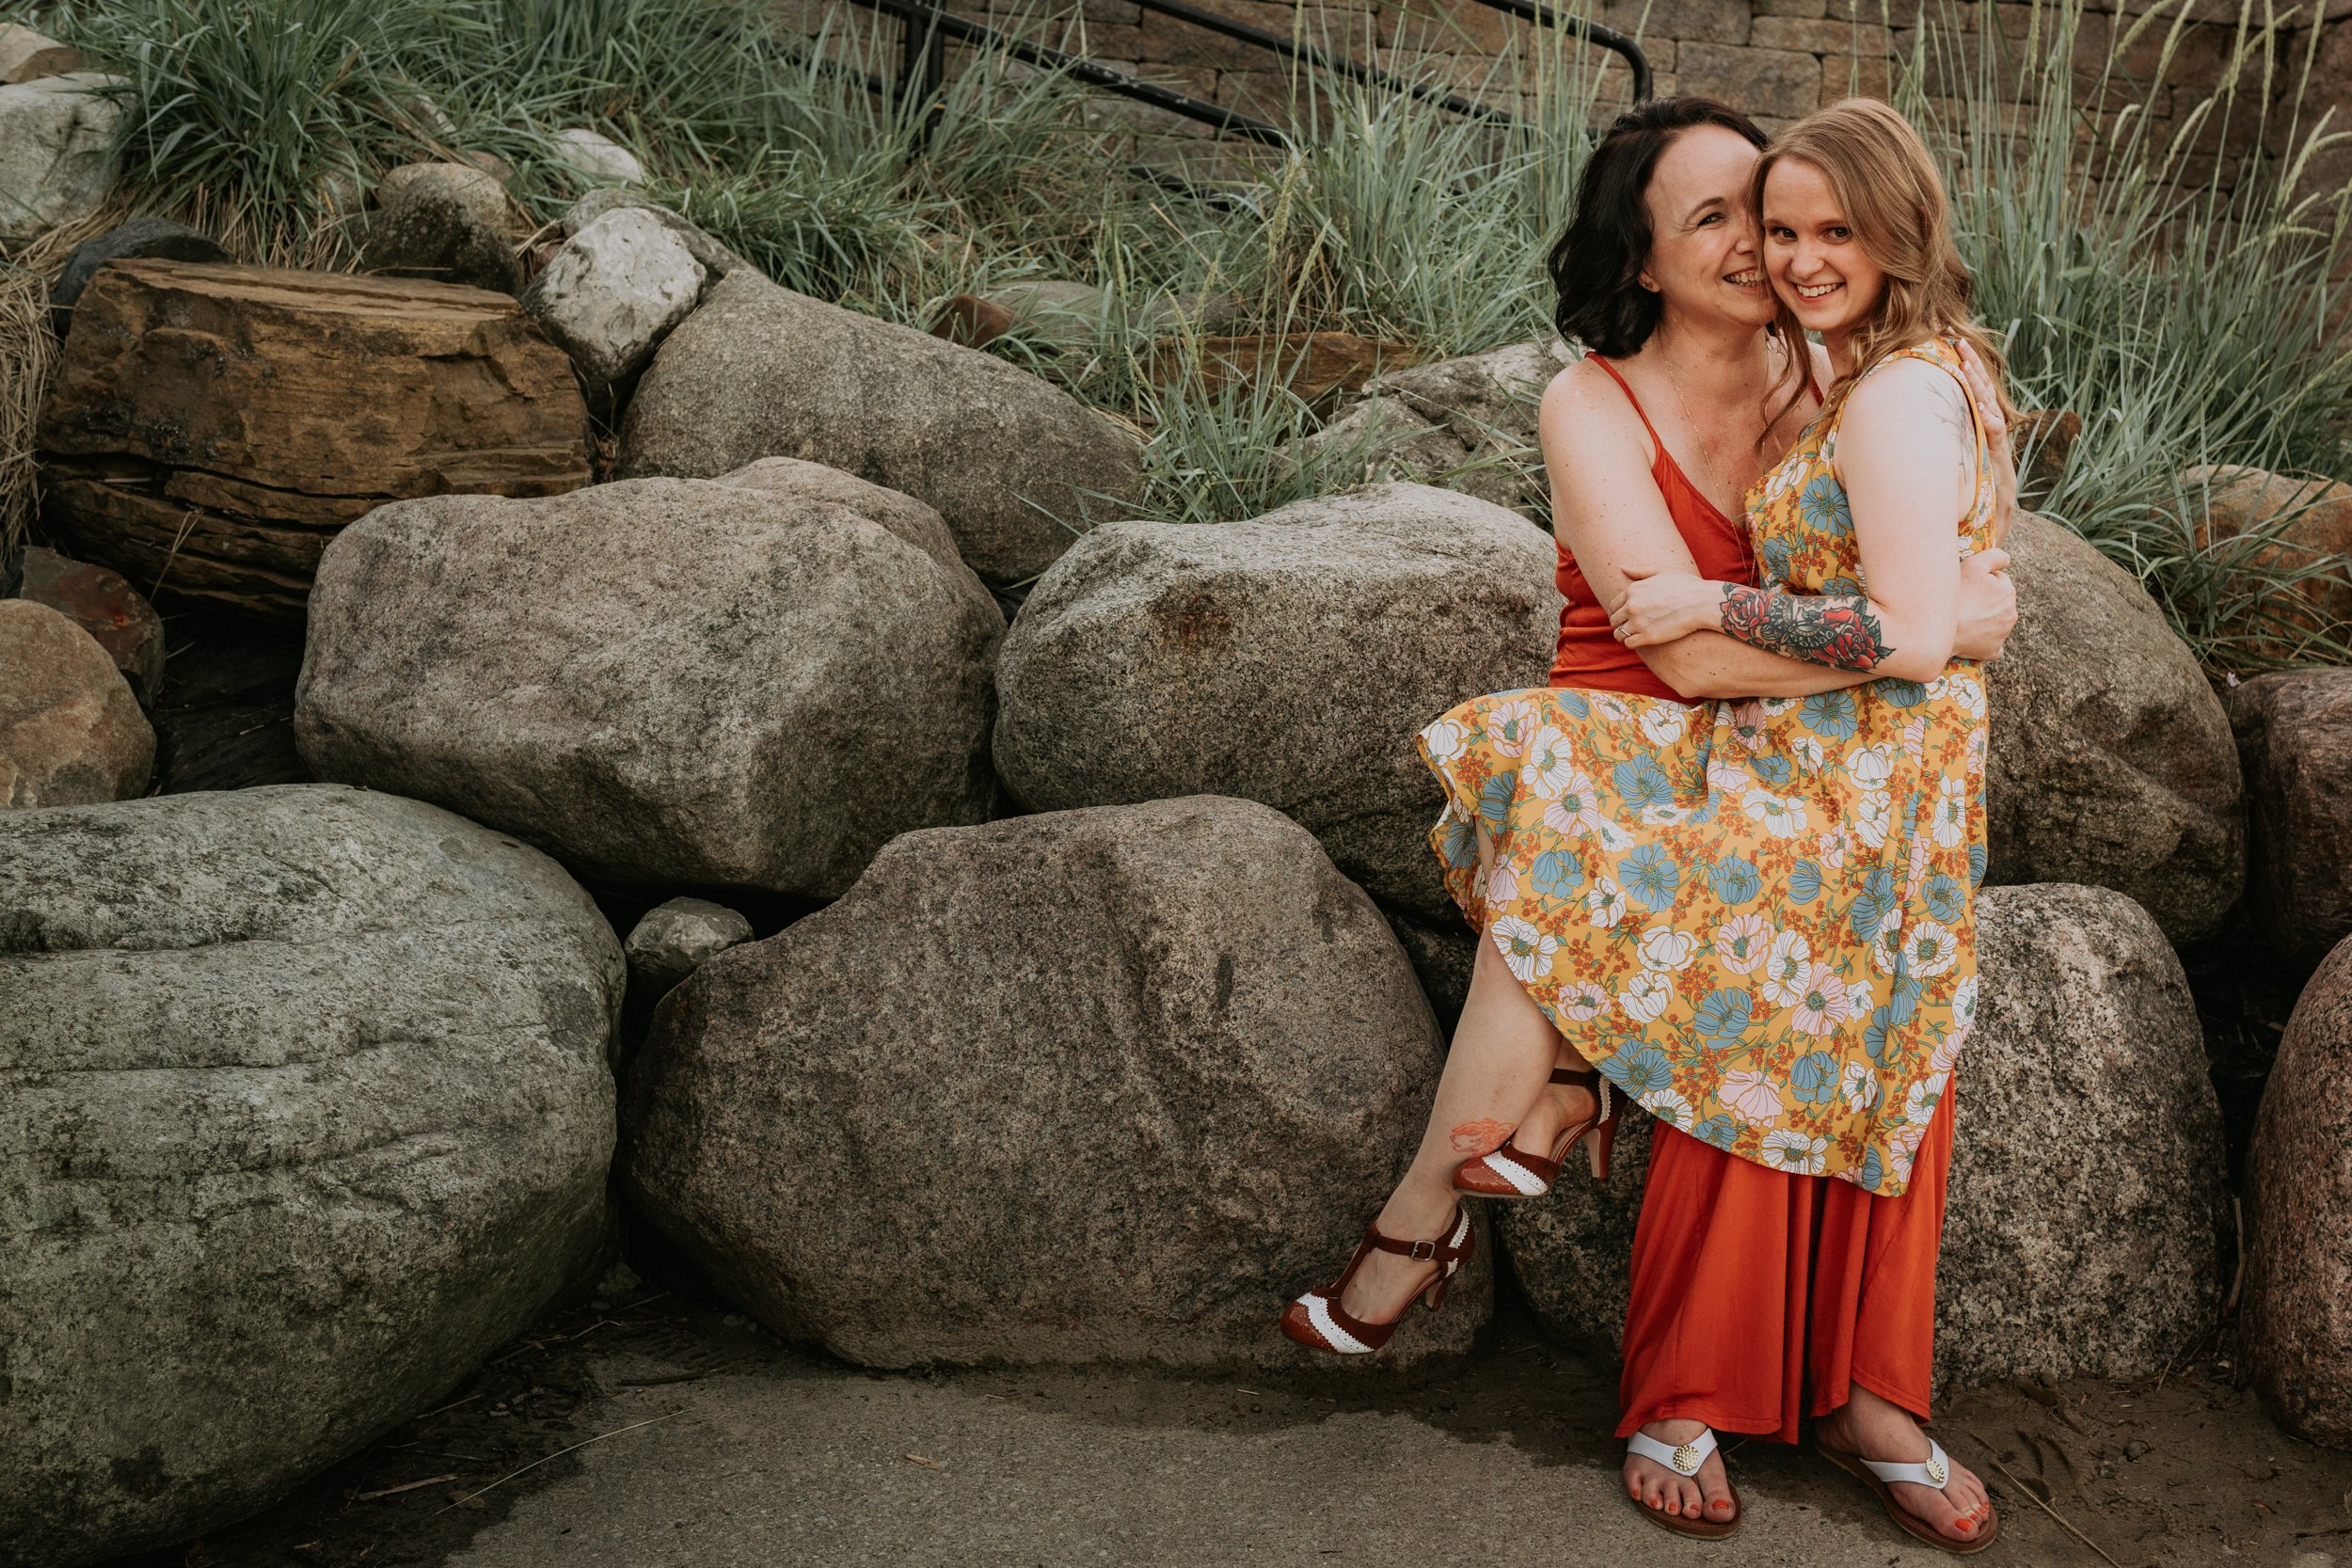 Kathryn & Heather Engagement Session in Downtown Rockford MI